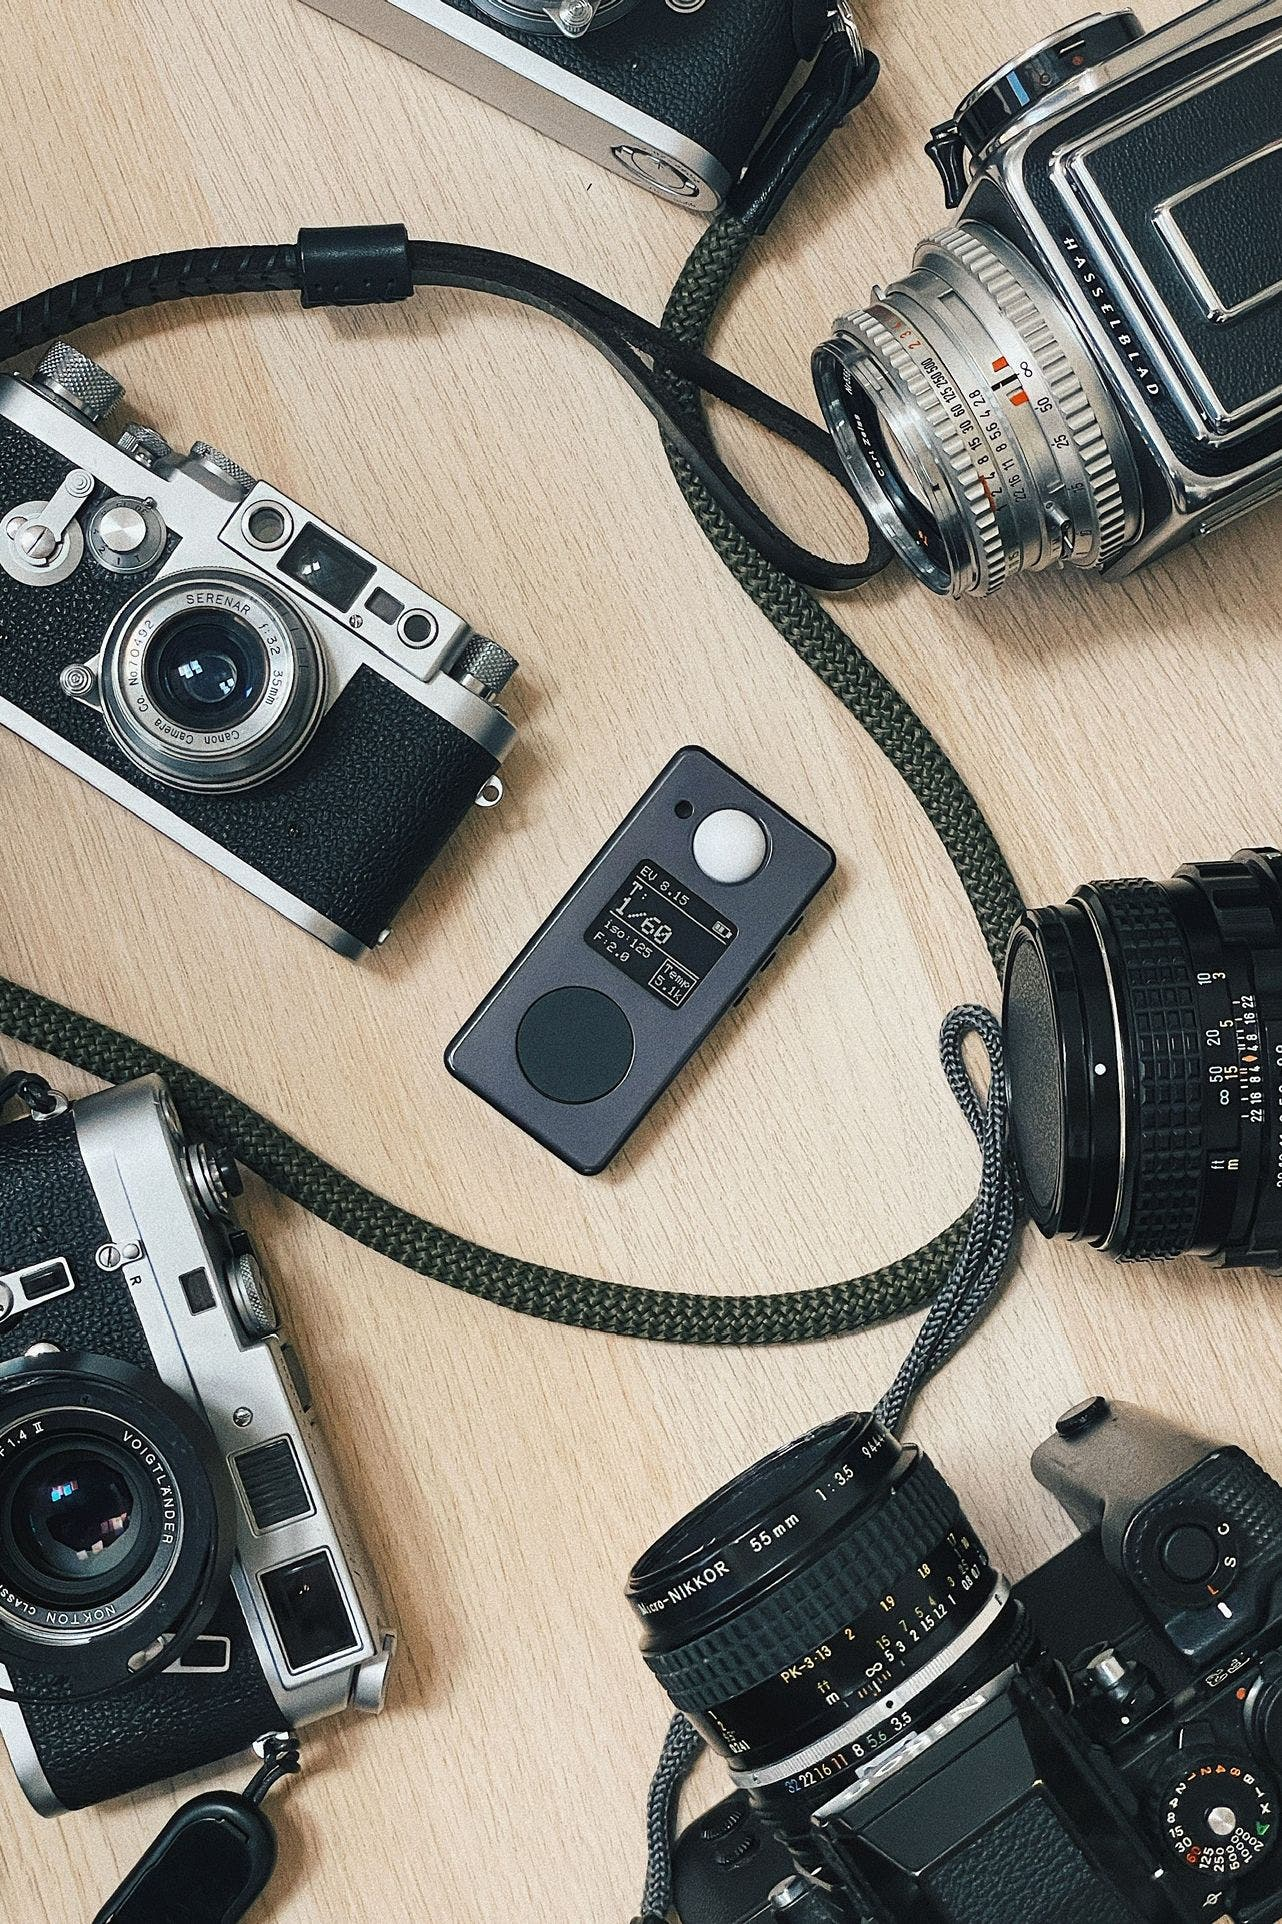 The Negative Supply Light Meter LM1 is Adorable, Small, and Powerful